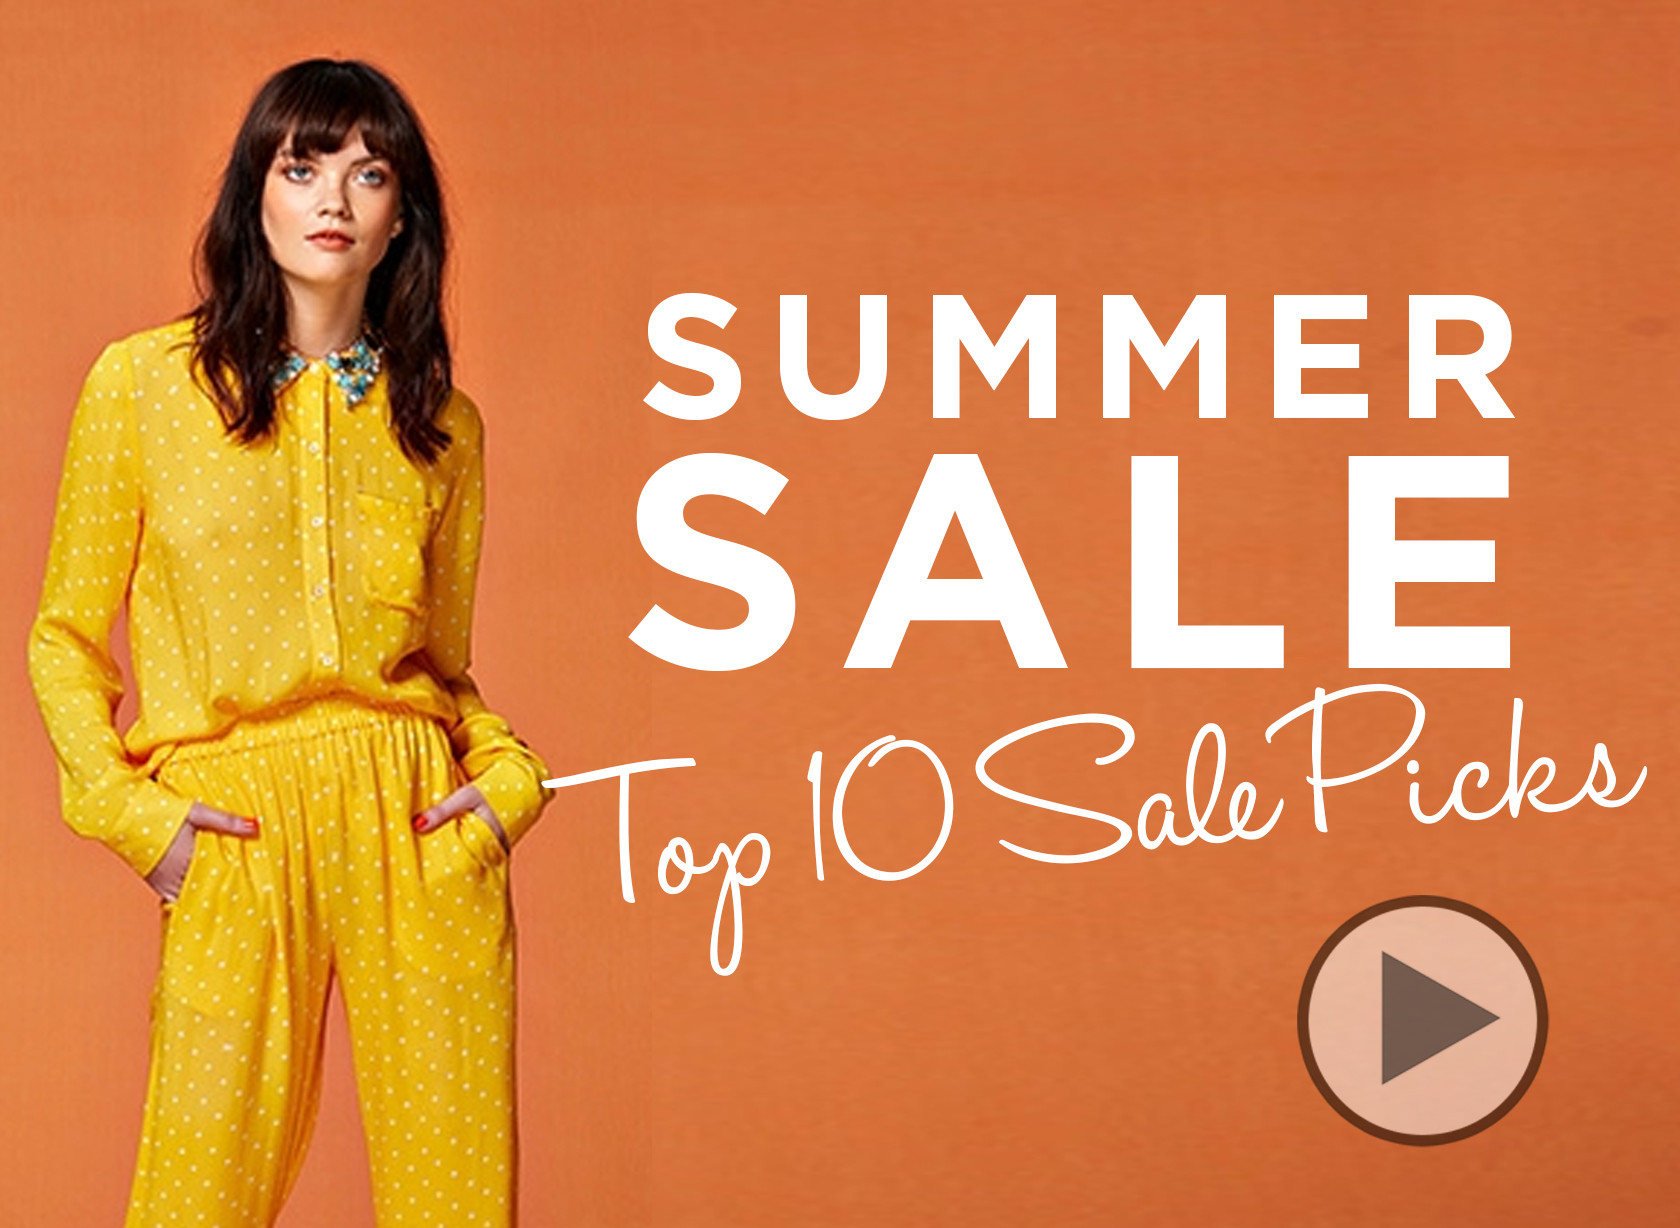 Summer Sale - Top 10 Sale Picks Video